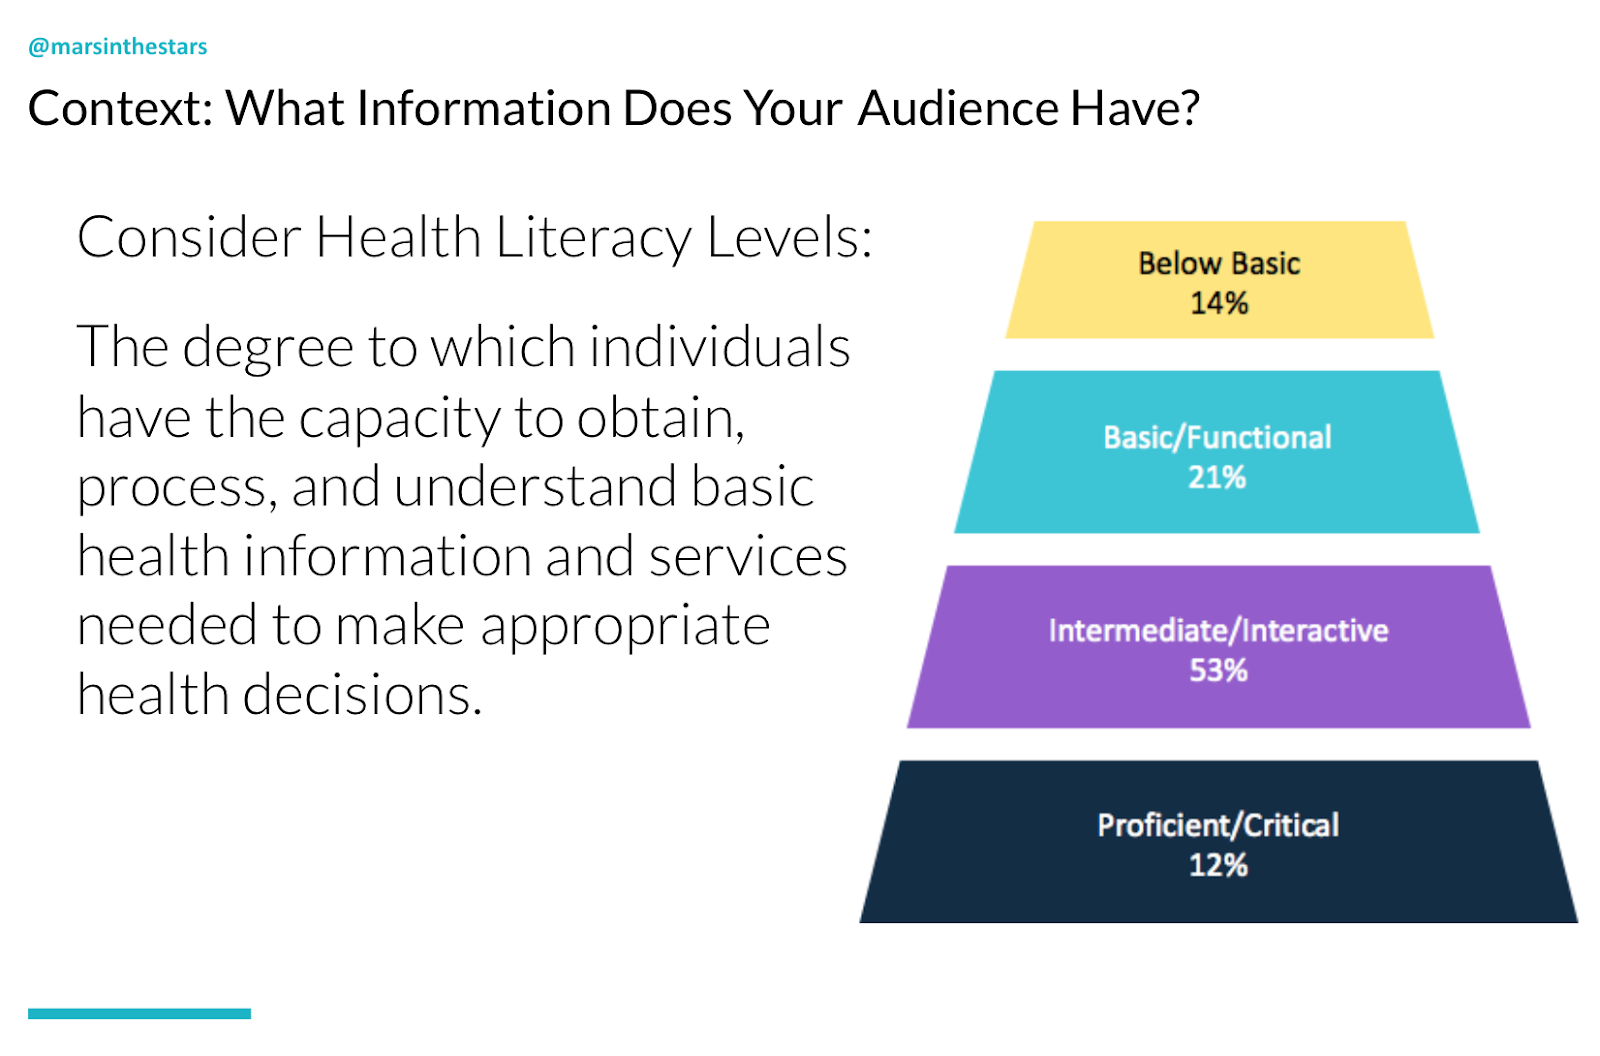 Slide shows context: what information does your audience have? Health literacy level means the degree to which individuals have the capacity to obtain, process and understand basic health information and services needed to make appropriate health decisions. US literacy levels - Below basic = 14%, Basic/functional = 21%, Intermediate/interactive = 53%, Proficient/critical = 12%.